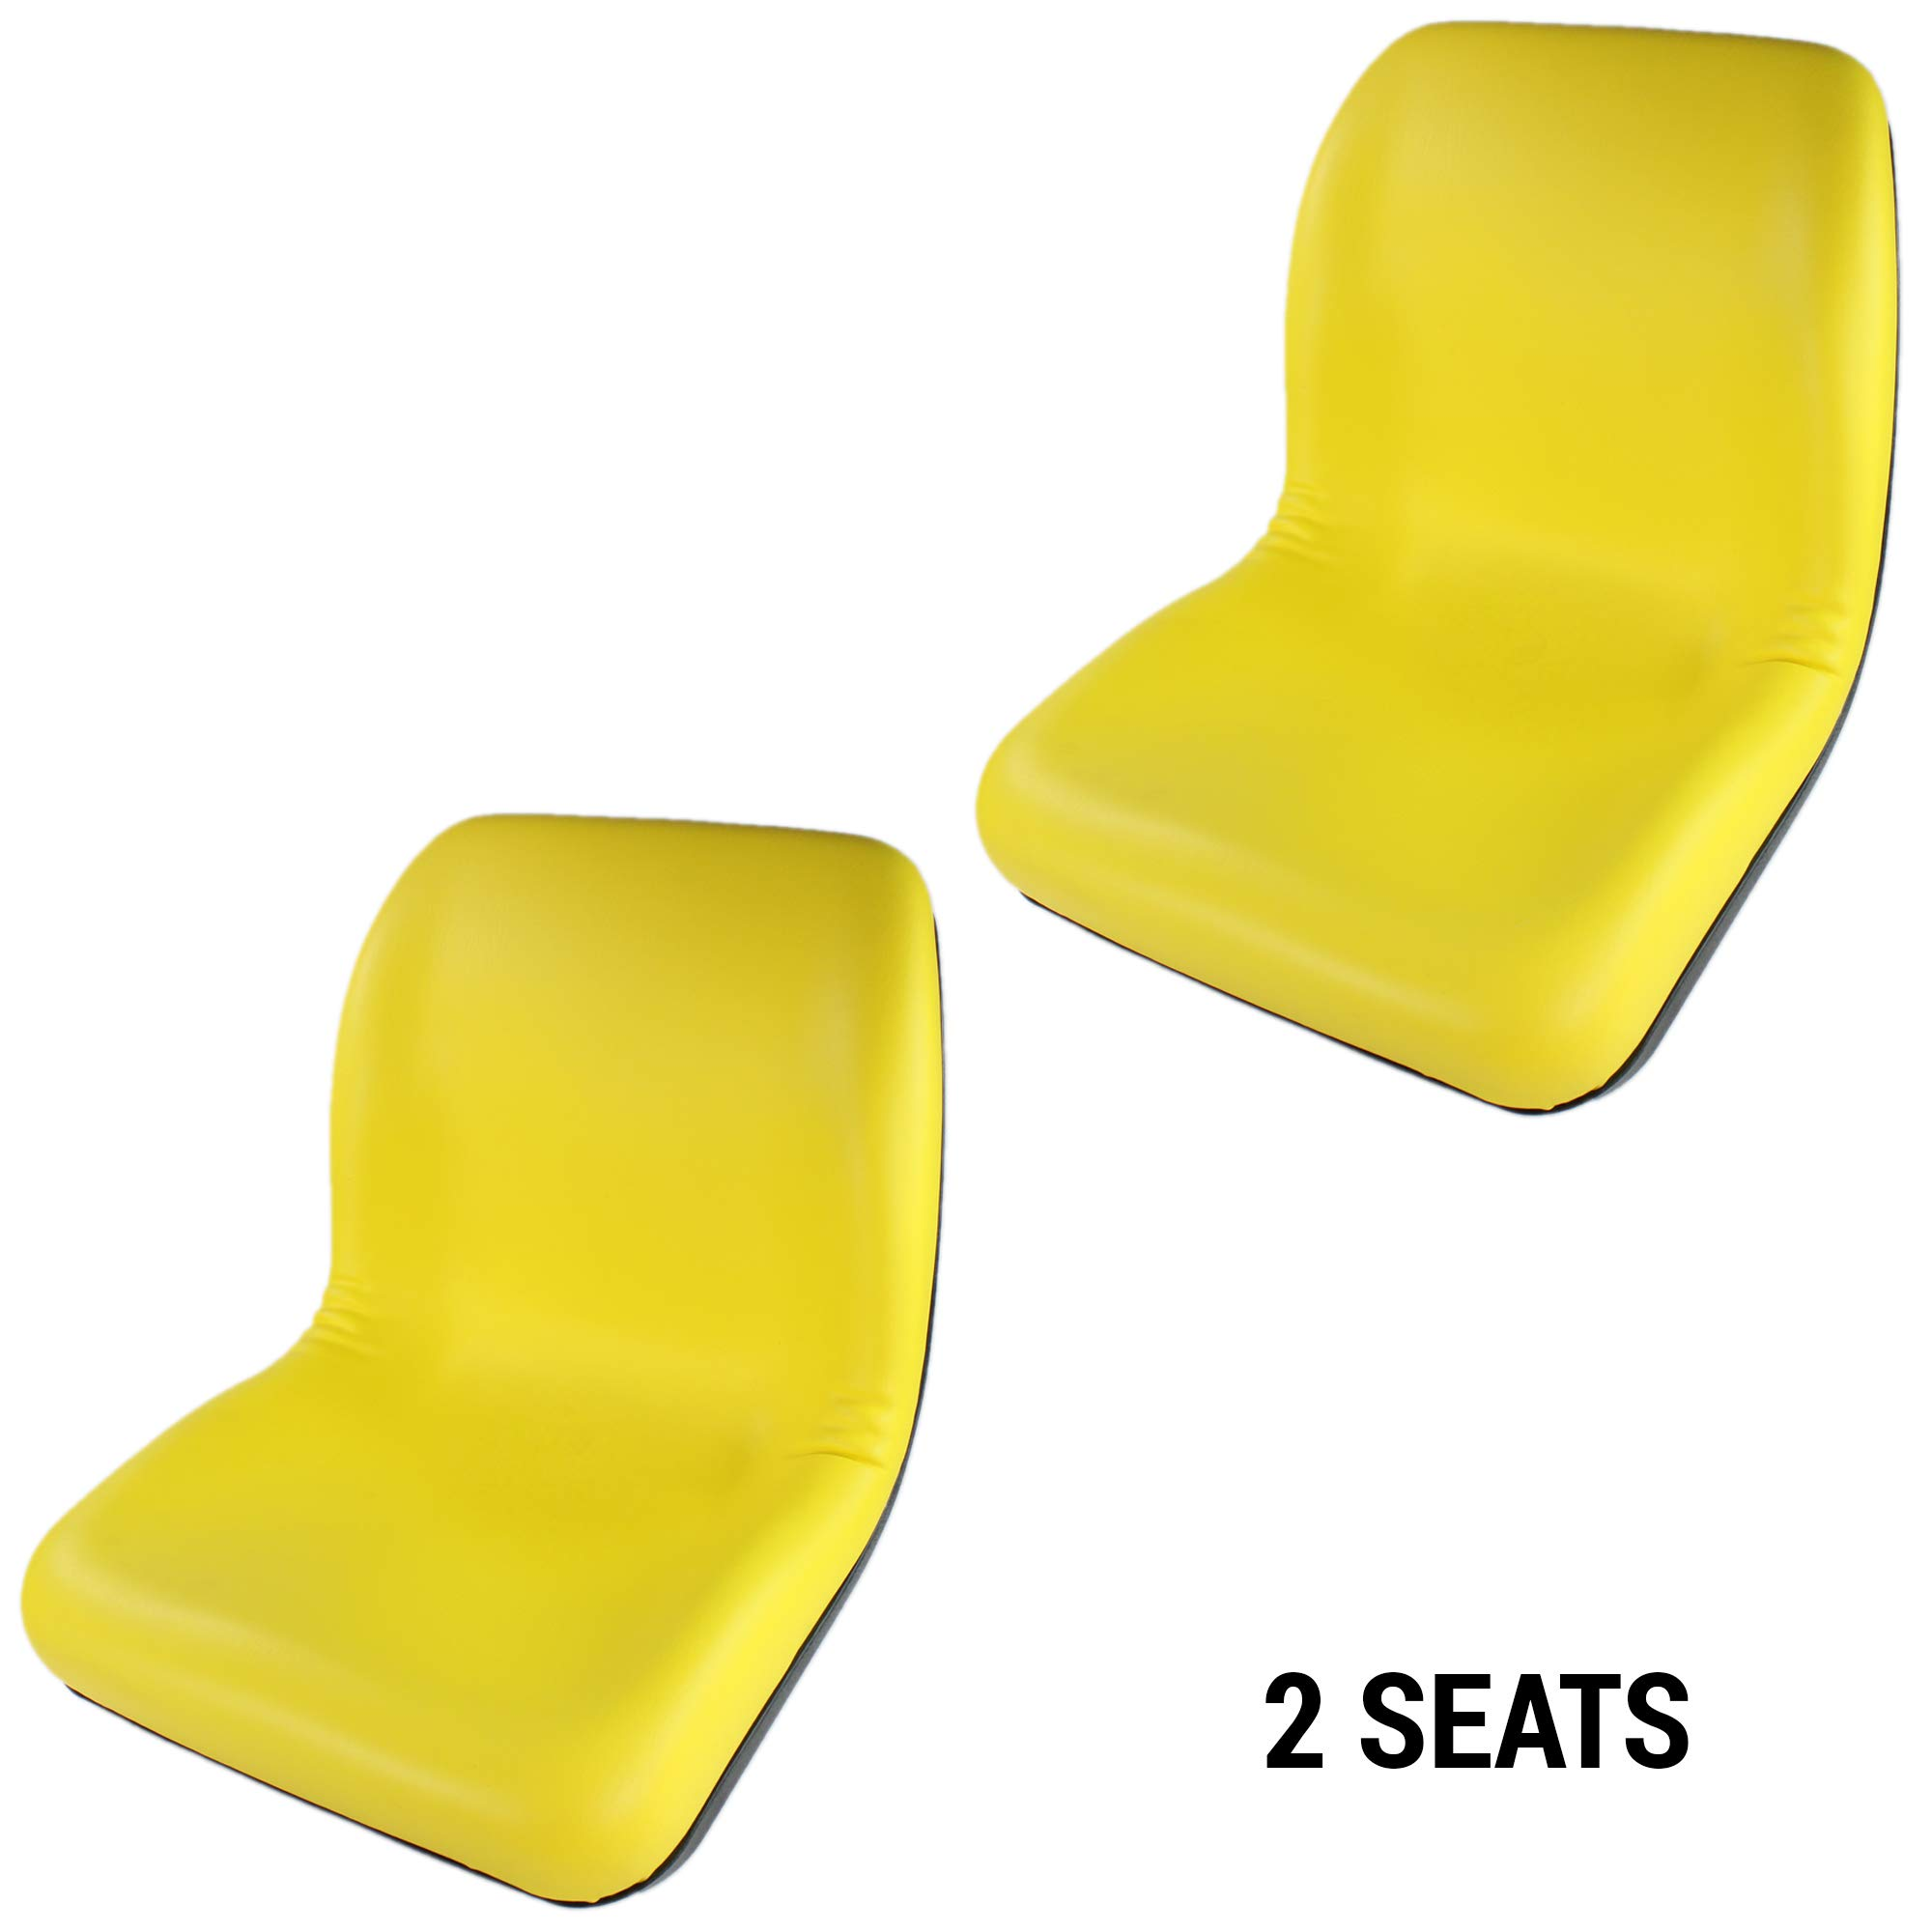 E-VG11696 Two Seats for John Deere Gator (2pcs) for XUV 850D, CX GATOR, CS GATOR, E GATOR, GATOR TURF, TE GATOR TURF ELECTRIC, TH TURF GATOR, TH 6X4 DIESEL GATOR, TX 4X2 GATOR, F735, F725, F710 ++ by Eparts, Inc.